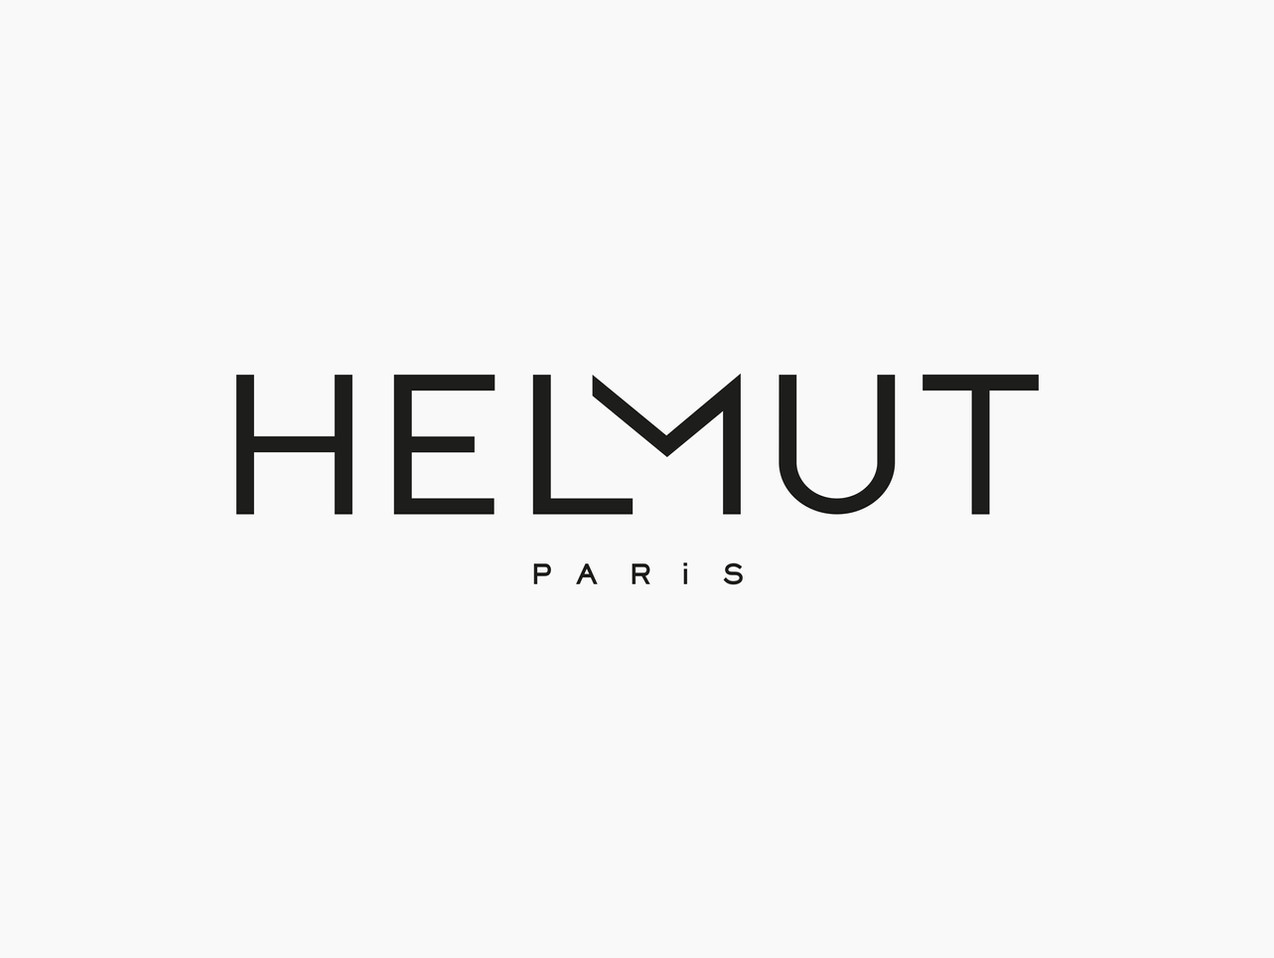 Helmut Paris